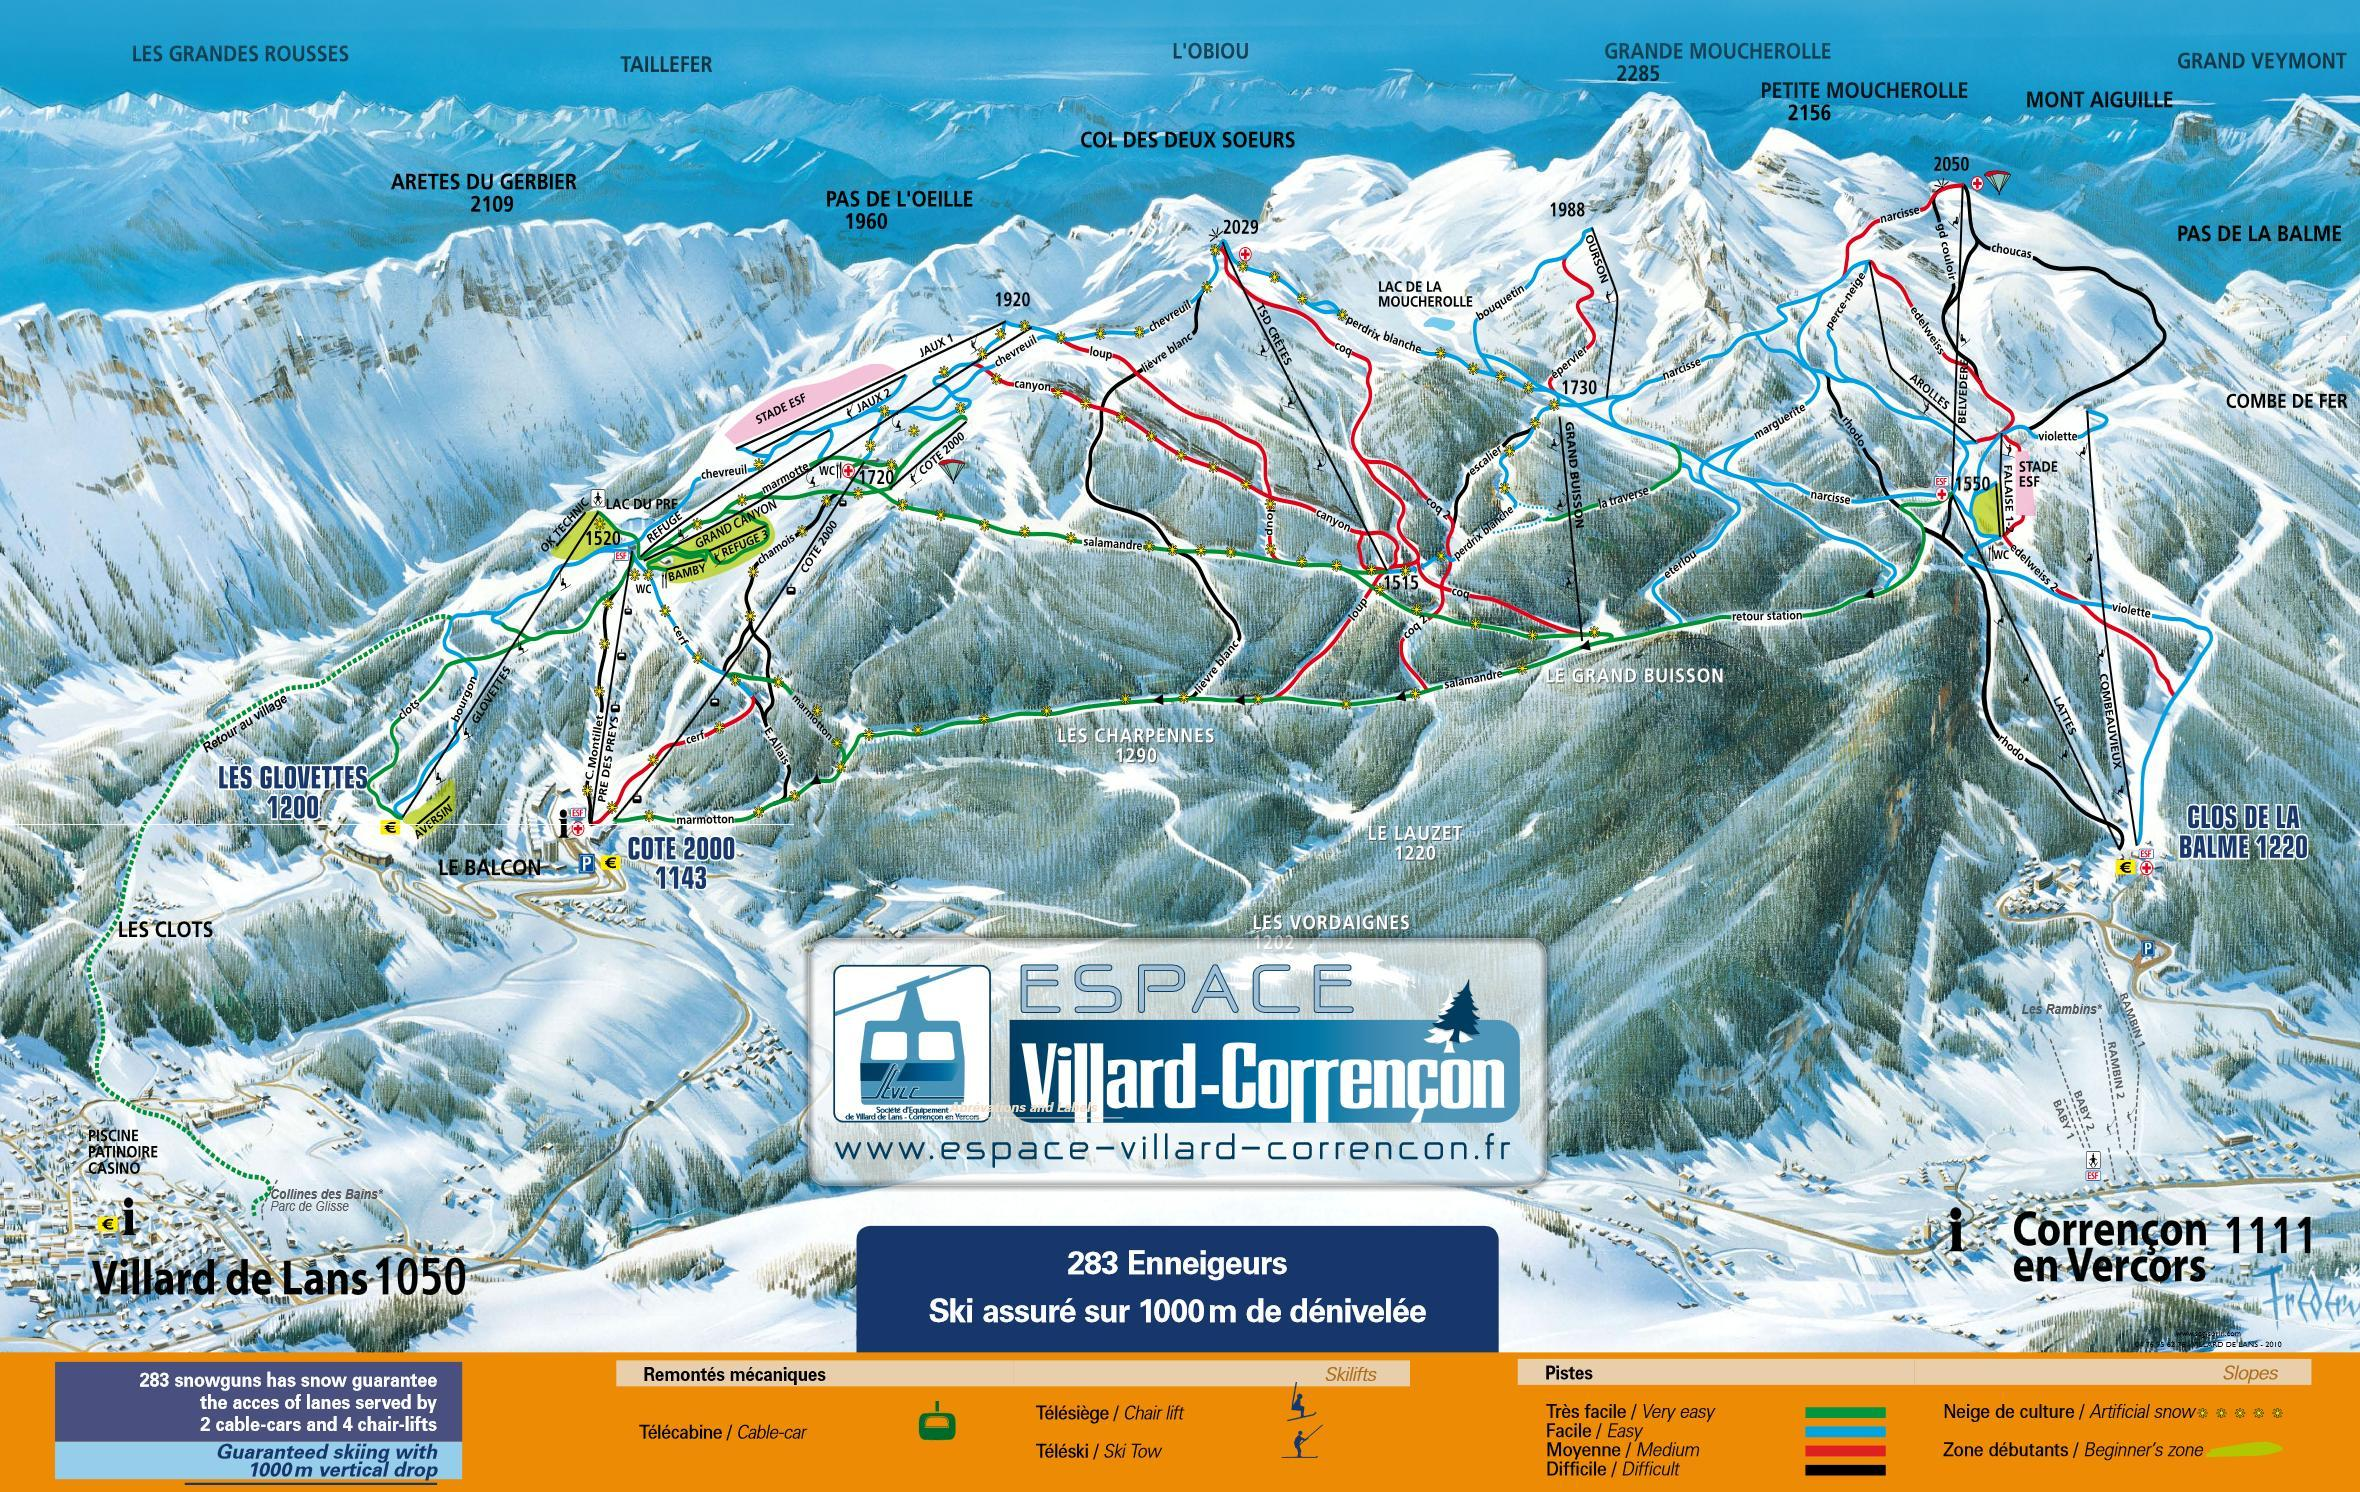 Correncon en Vercors Piste / Trail Map